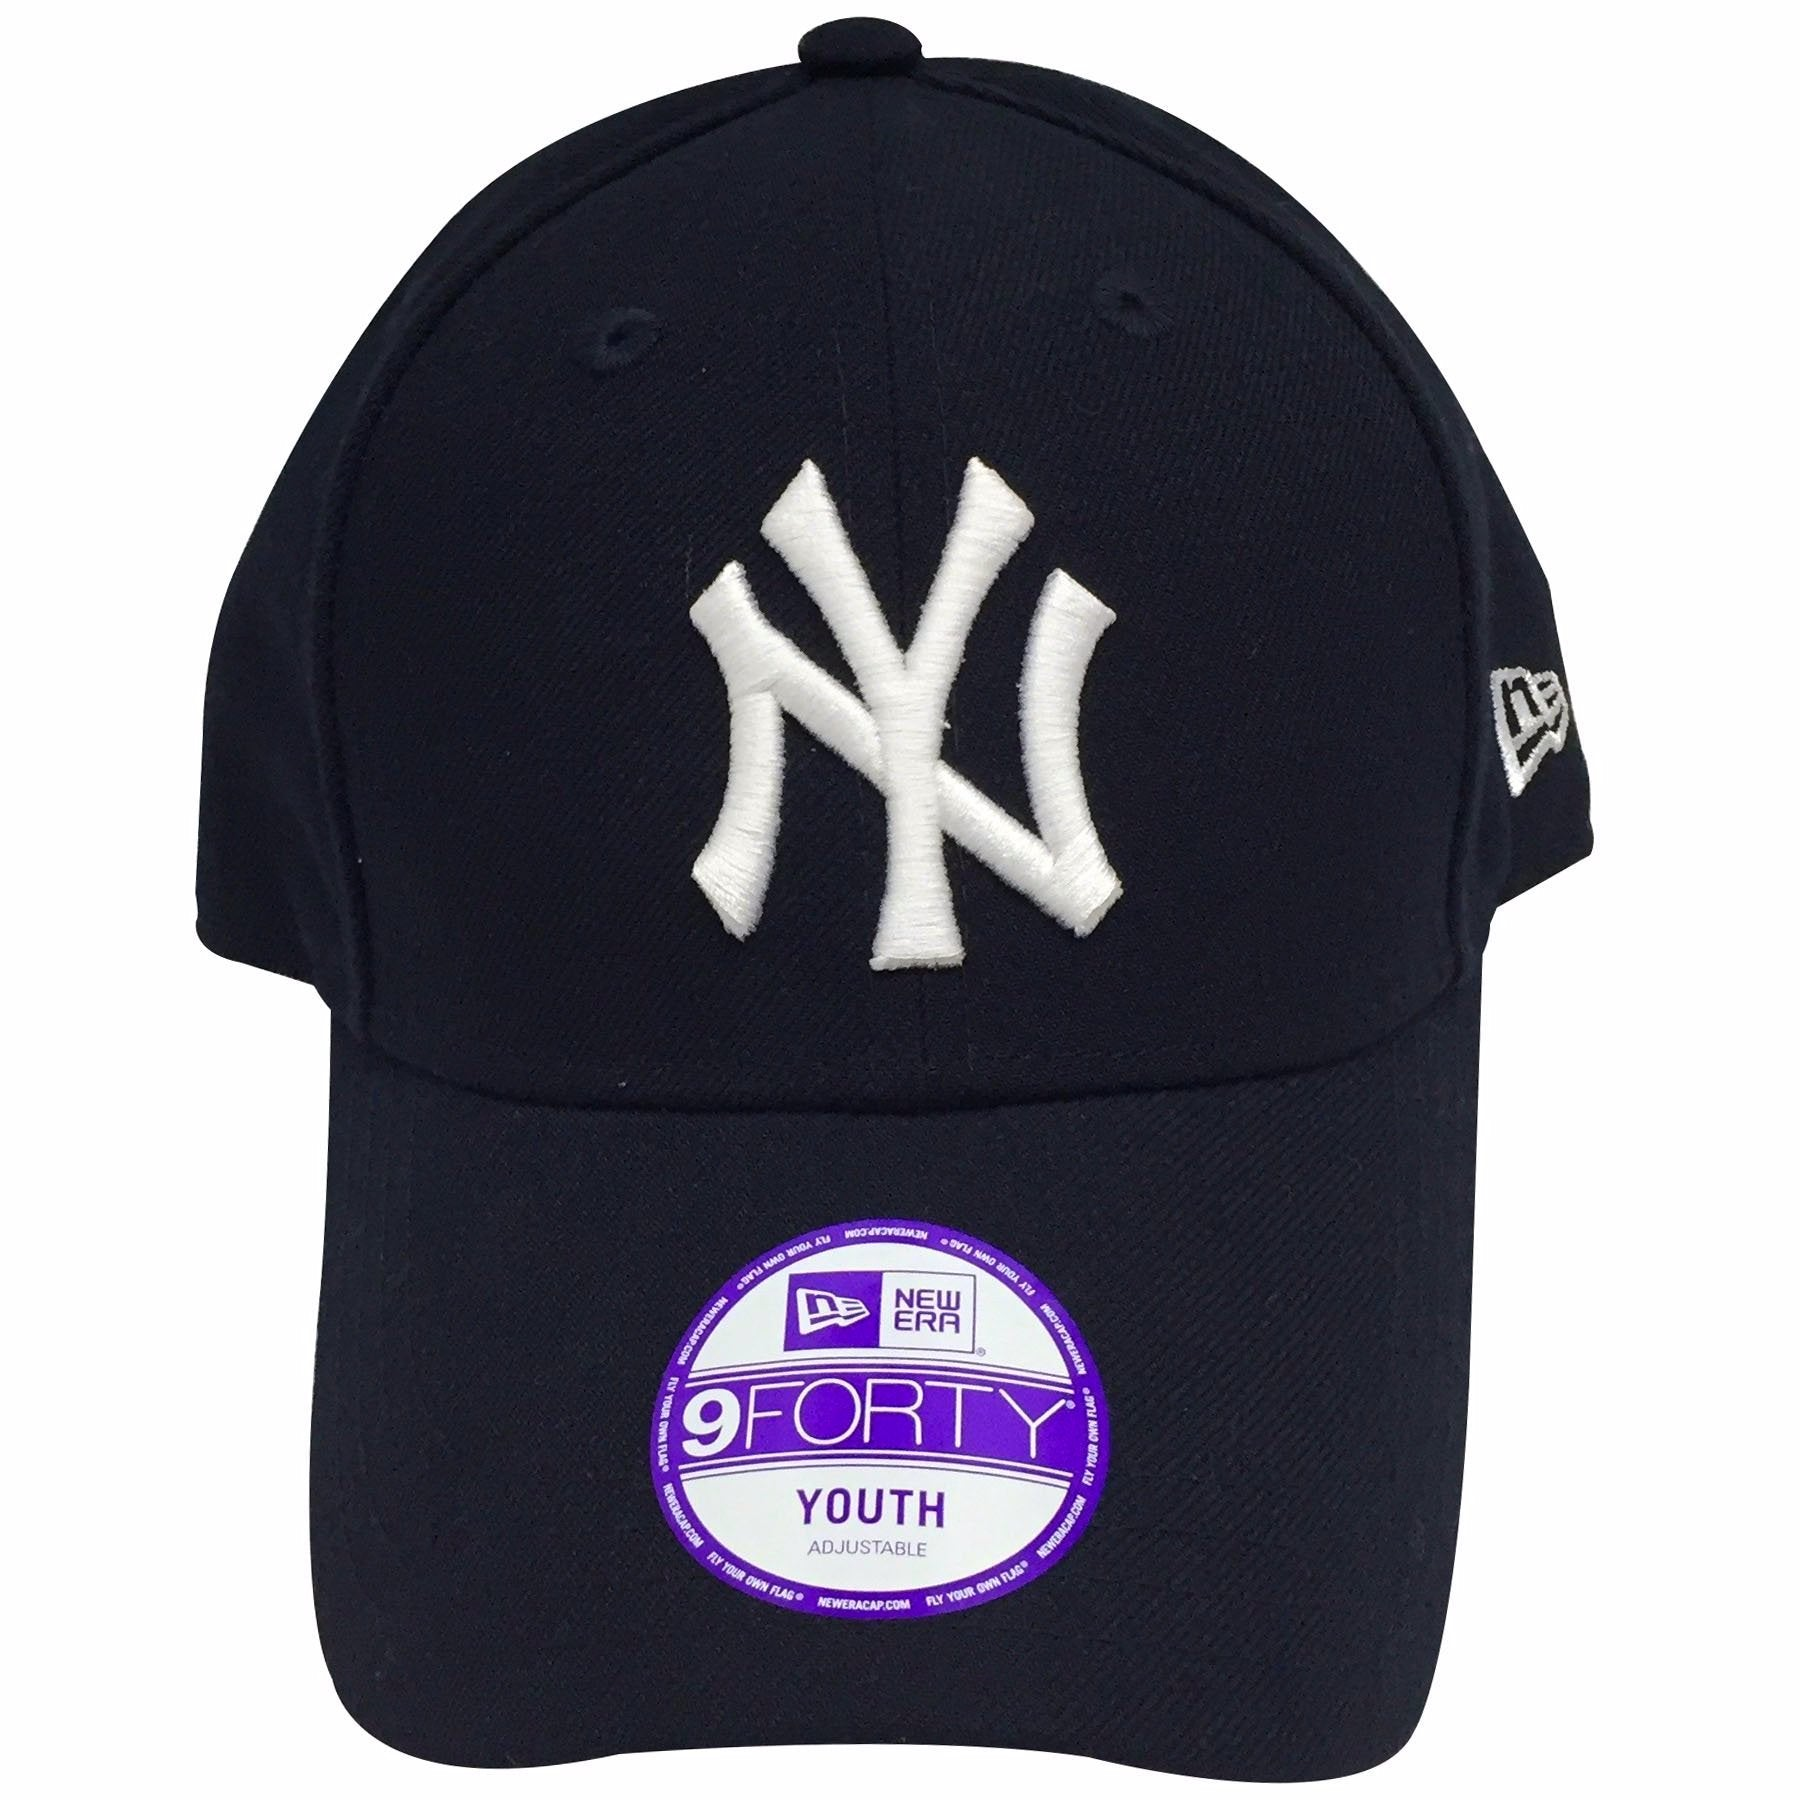 0af50362b23 the New York Yankees navy blue dad hat has a white New York Yankees logo  embroidered